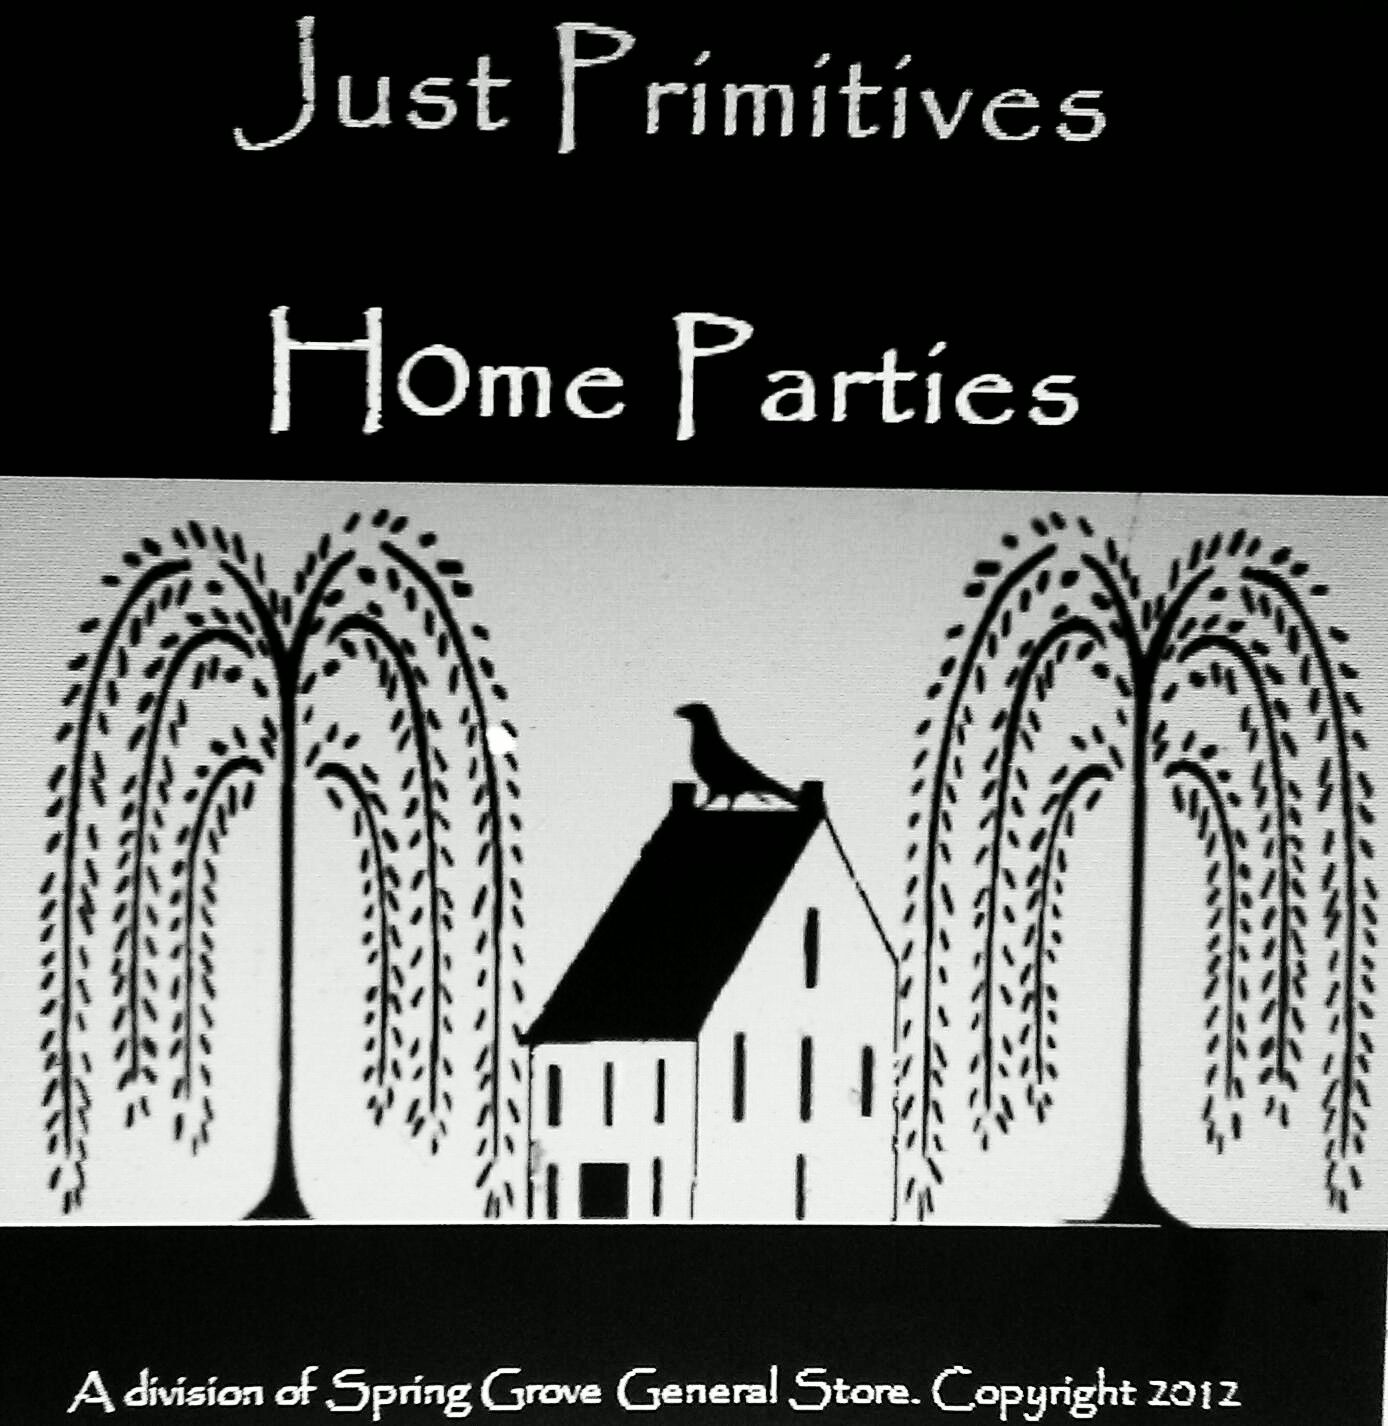 Our Home Party Business (Just Primitives) Logo.